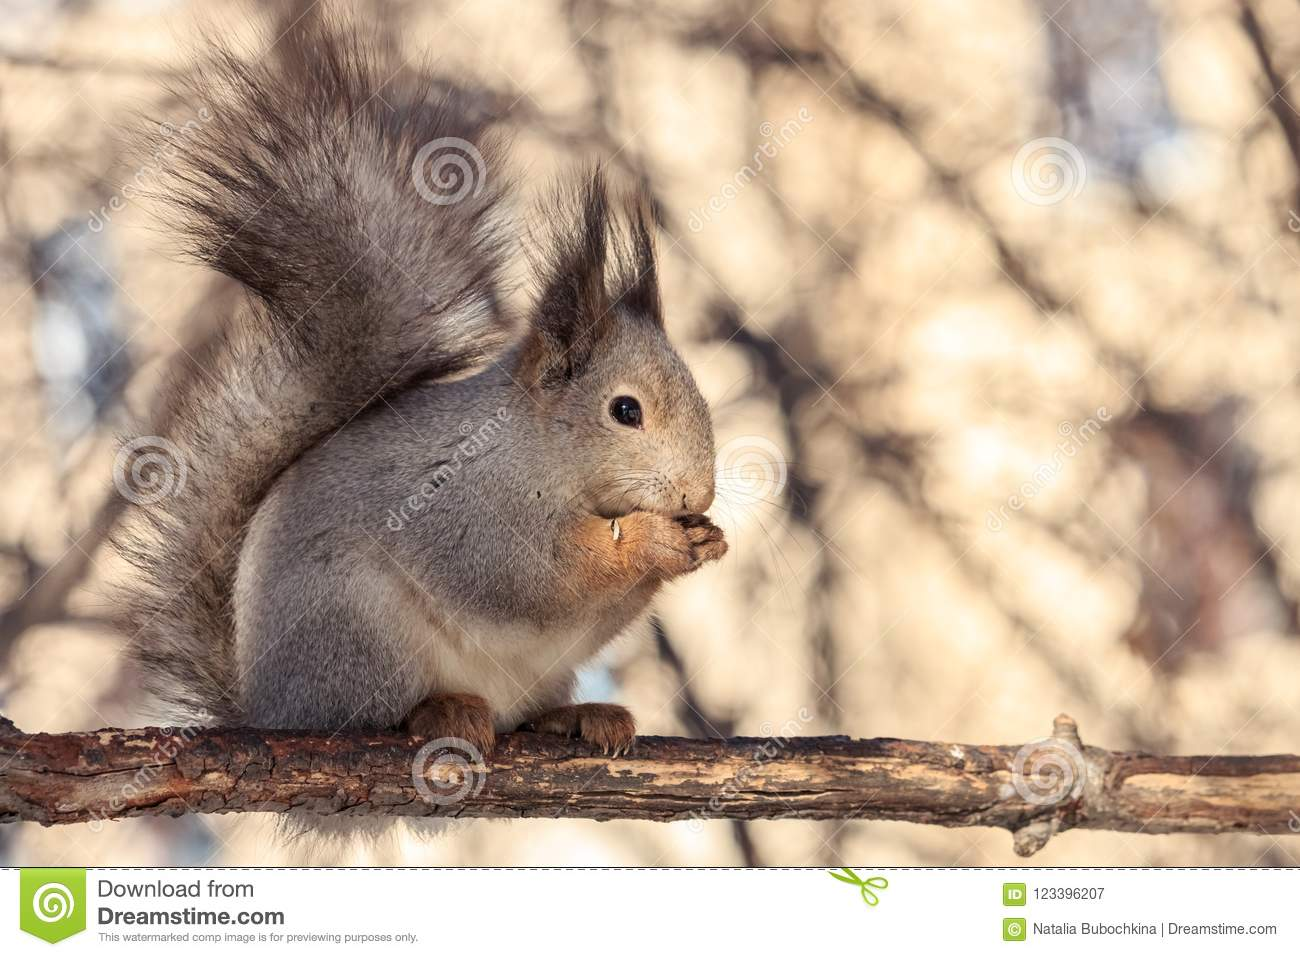 Cute fluffy squirrel sitting on branch and eating sunflower seeds with light blurred background